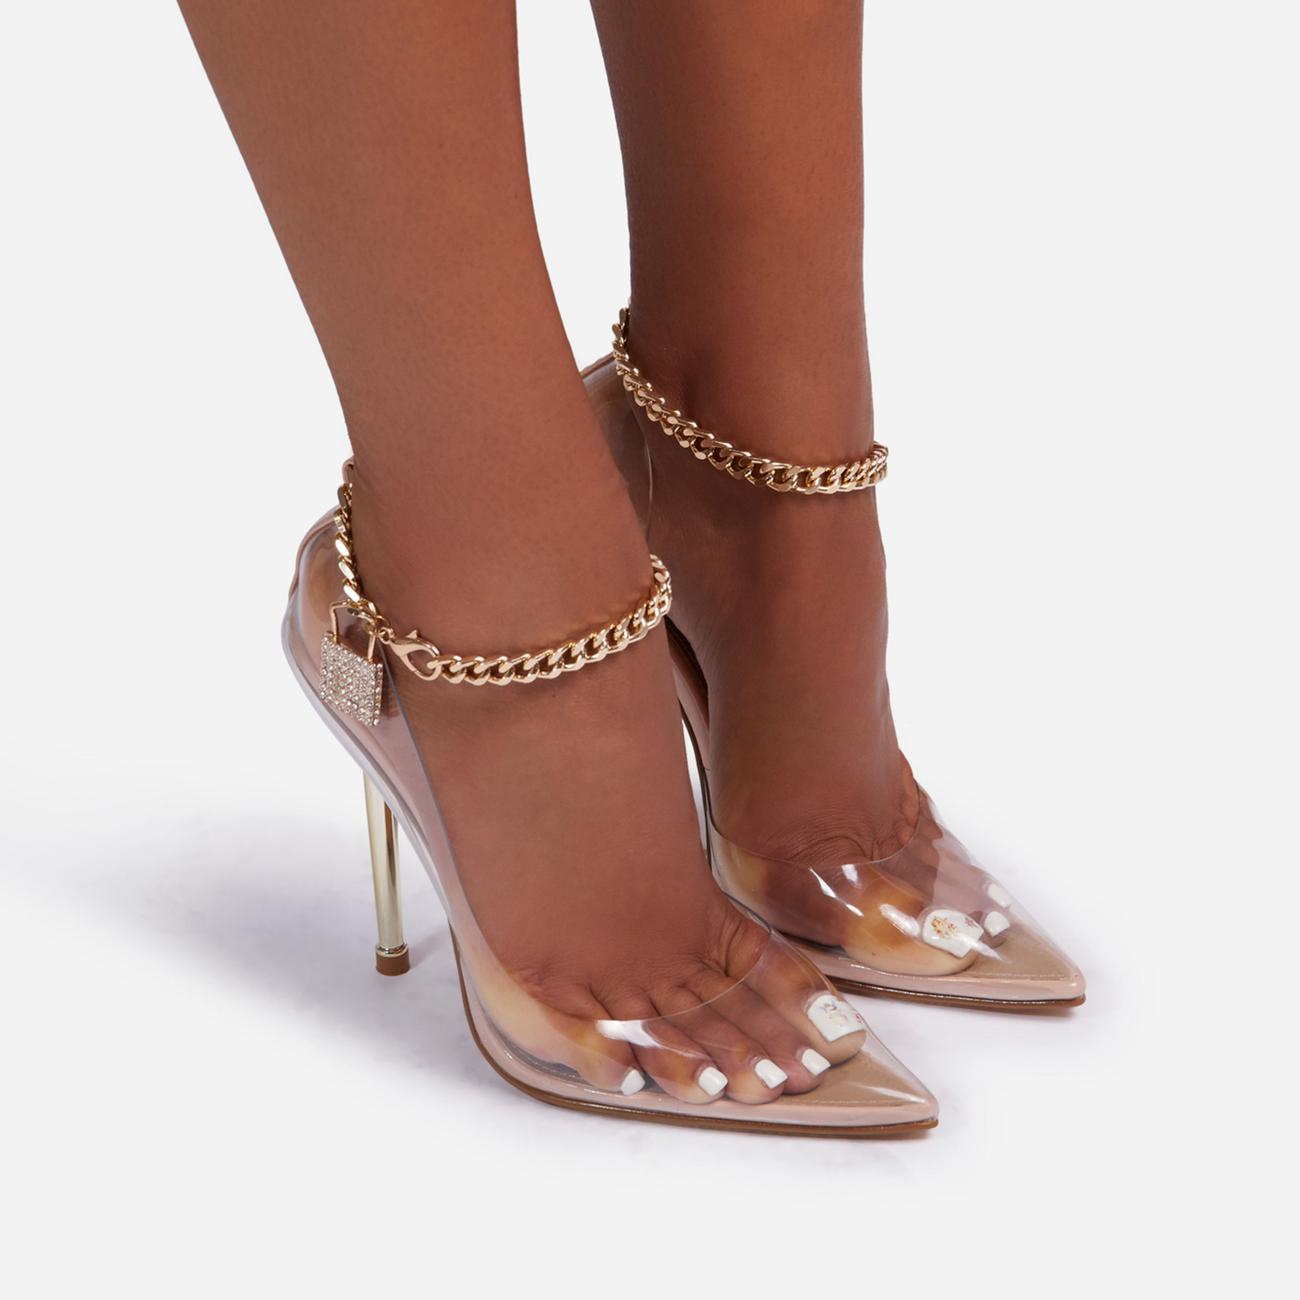 Empower Diamante Padlock Chain Detail Clear Perspex Metallic Court Heel In Nude Faux Leather Image 3